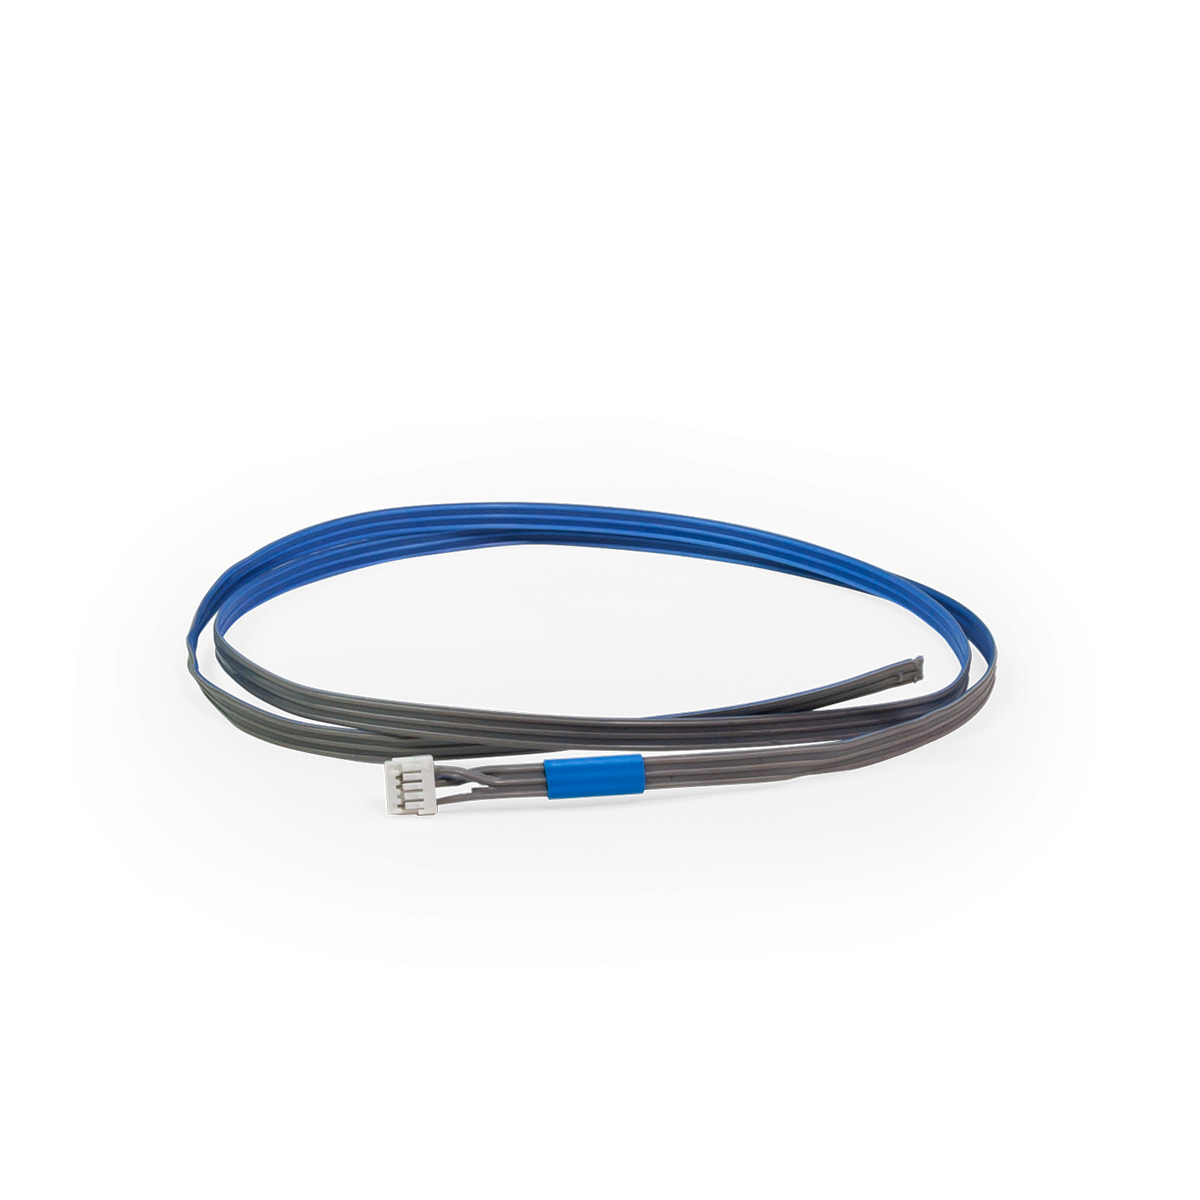 Espire Ottobock DC Electrode/Linear Transducer Cable